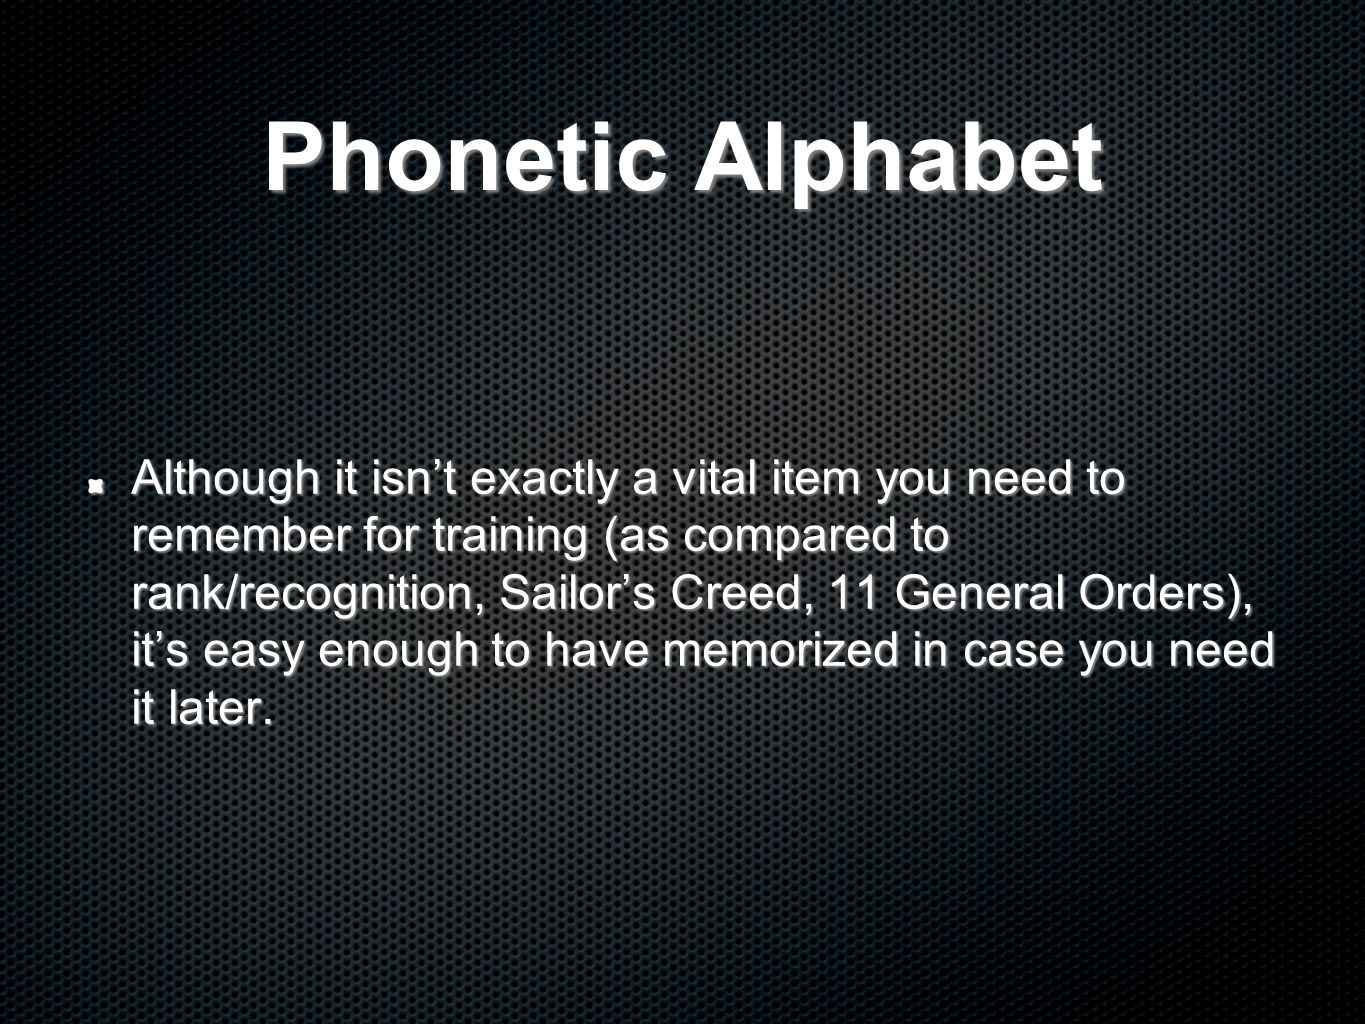 Phonetic Alphabet